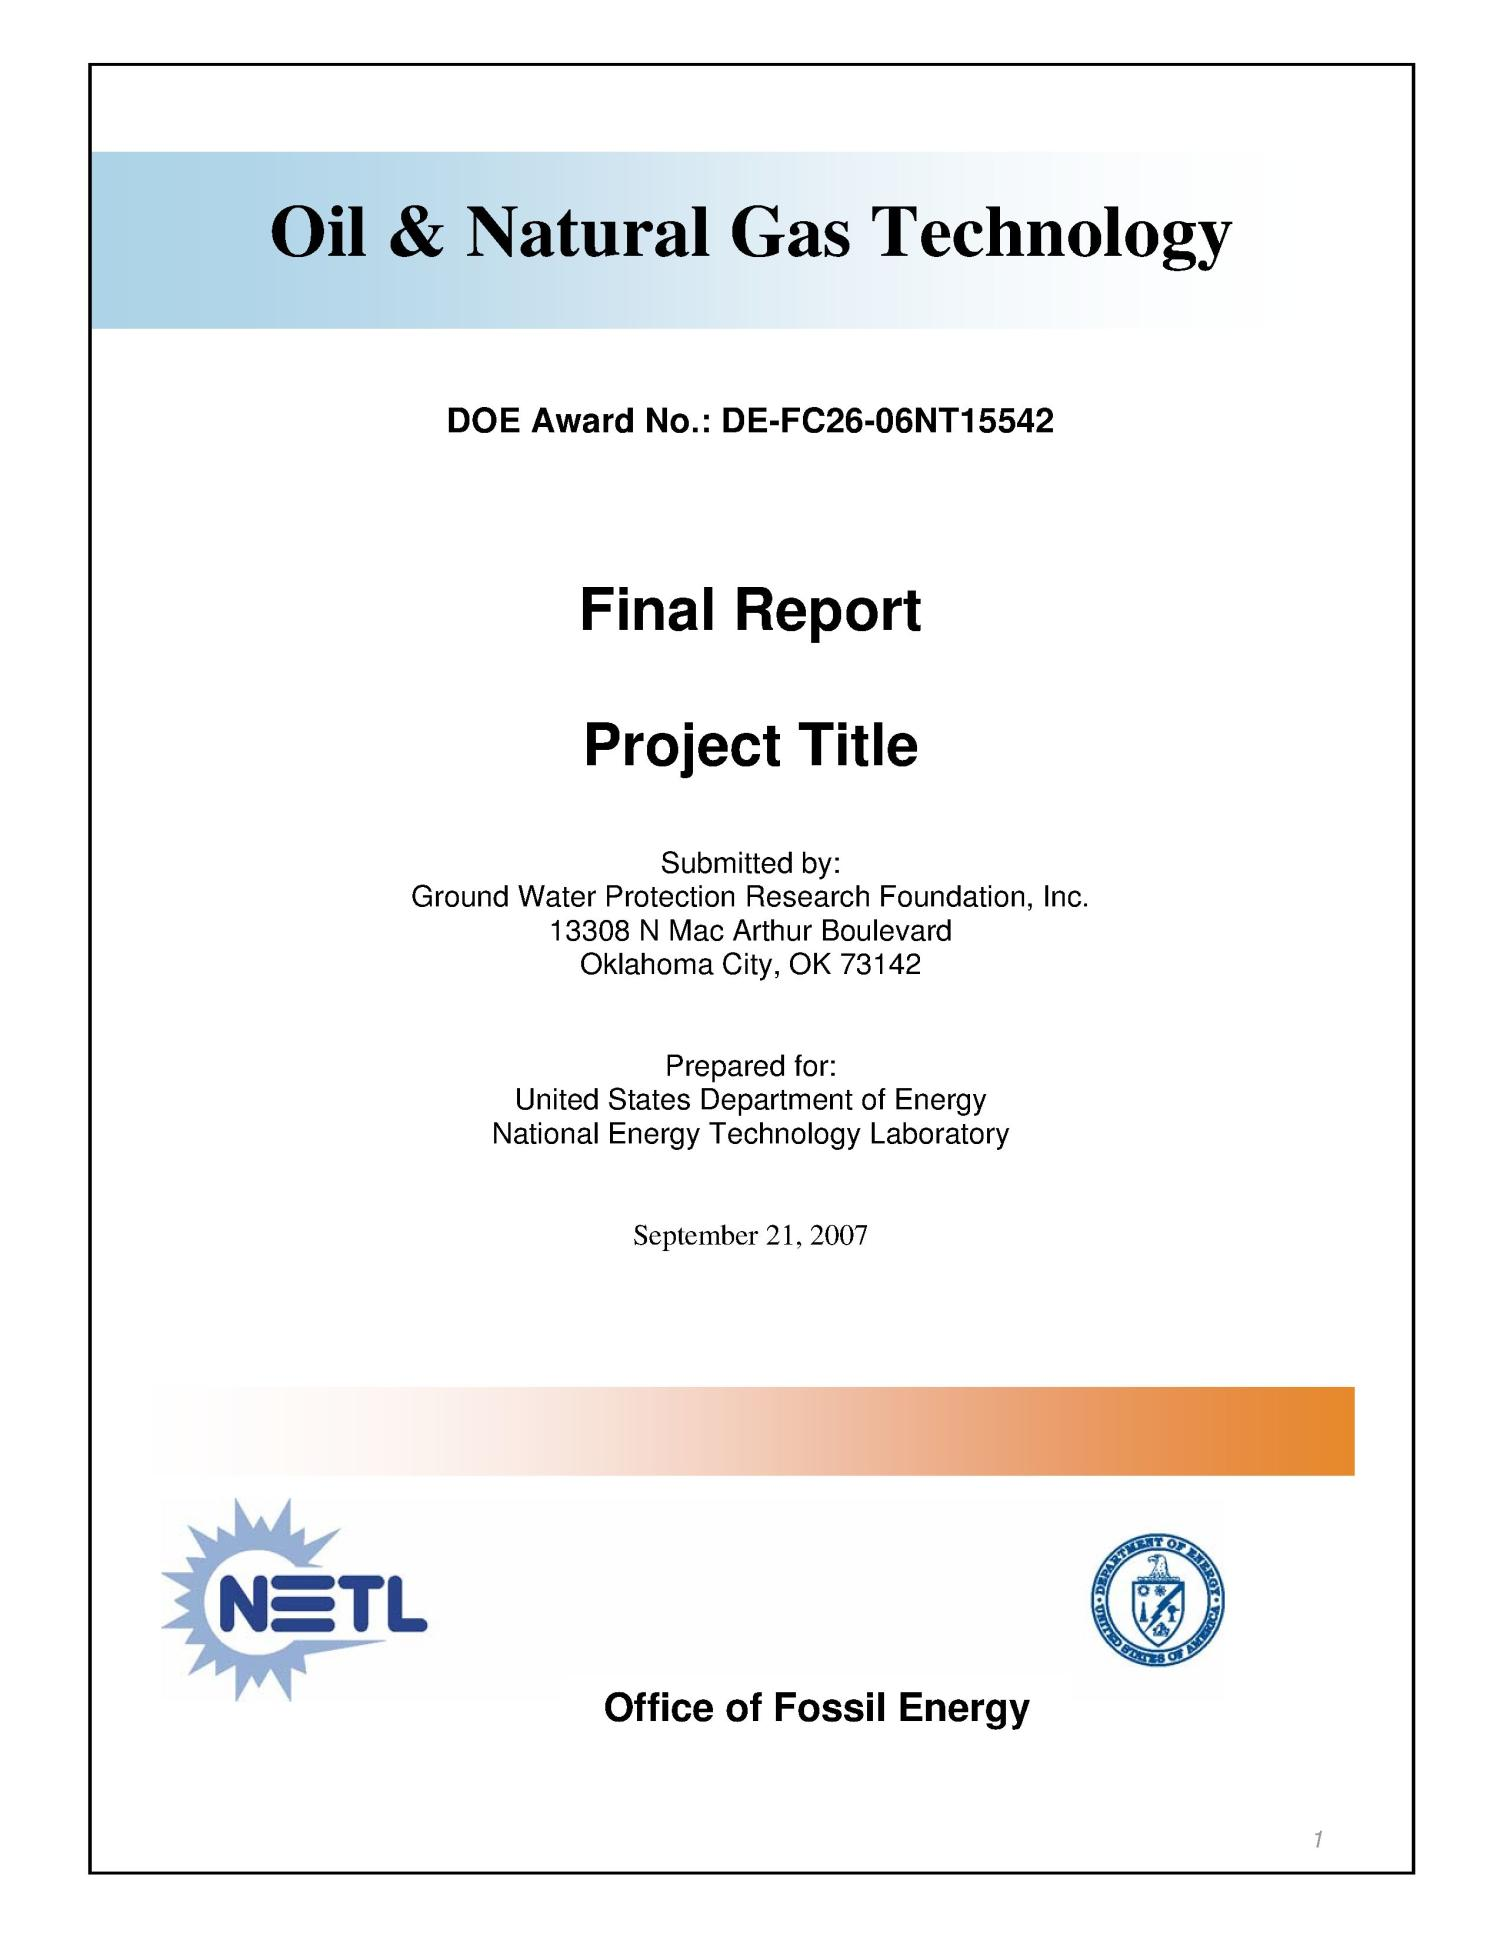 Facilitating Oil Industry Access to Federal Lands through Interagency Data Sharing                                                                                                      [Sequence #]: 1 of 25